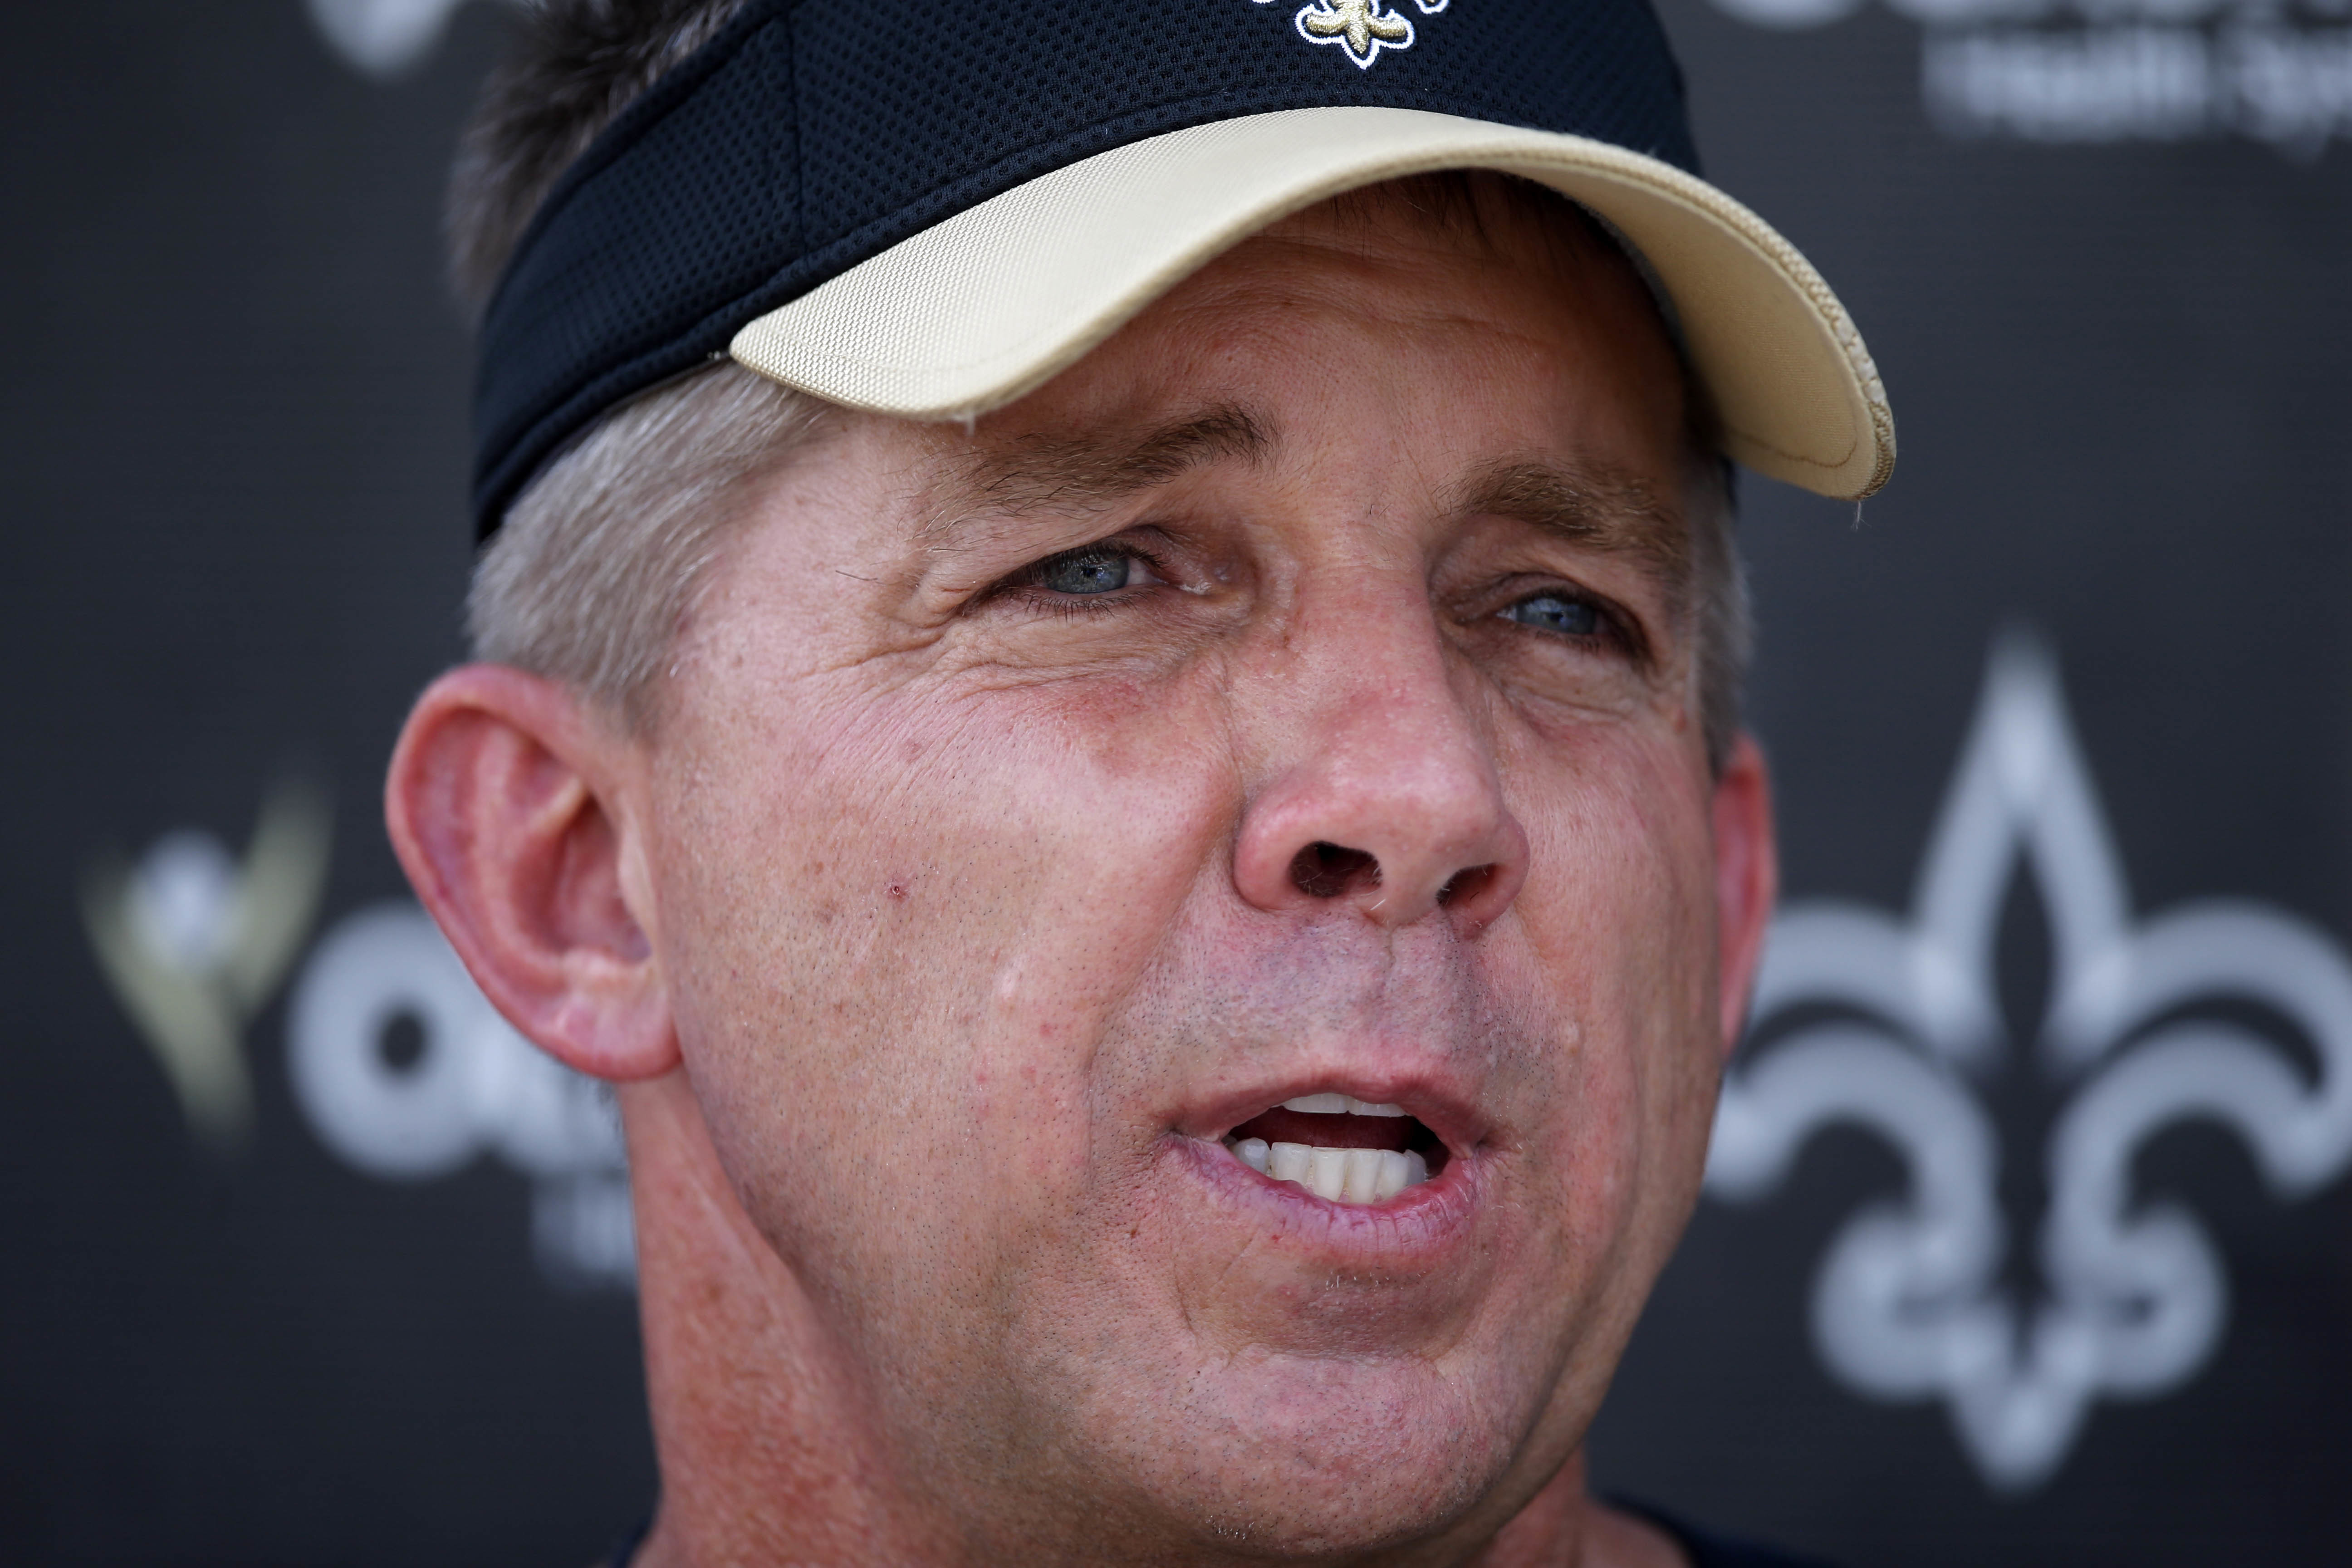 FILE - In this May 26, 2016, file photo, New Orleans Saints head coach Sean Payton talks to reporters after an NFL football practice in Metairie, La. The Saints open training camp in White Sulphur Springs, West Virginia, on July 27.  (AP Photo/Gerald Herb